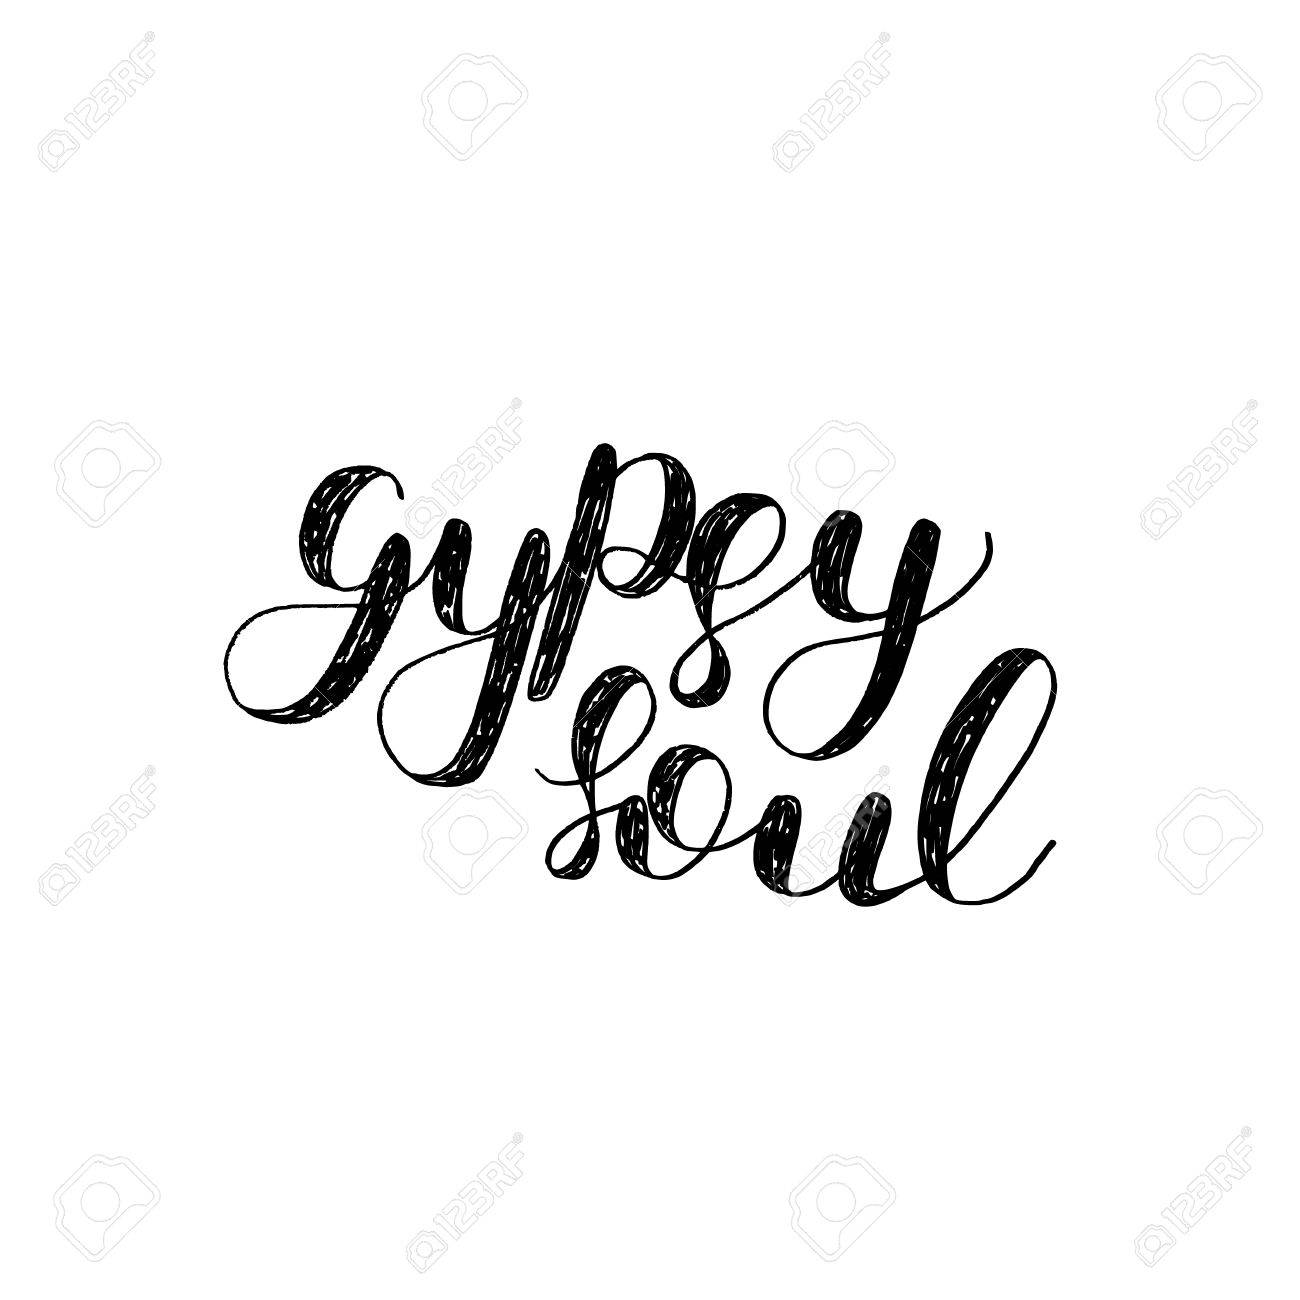 Gypsy Soul Brush Hand Lettering Inspiring Quote Motivating